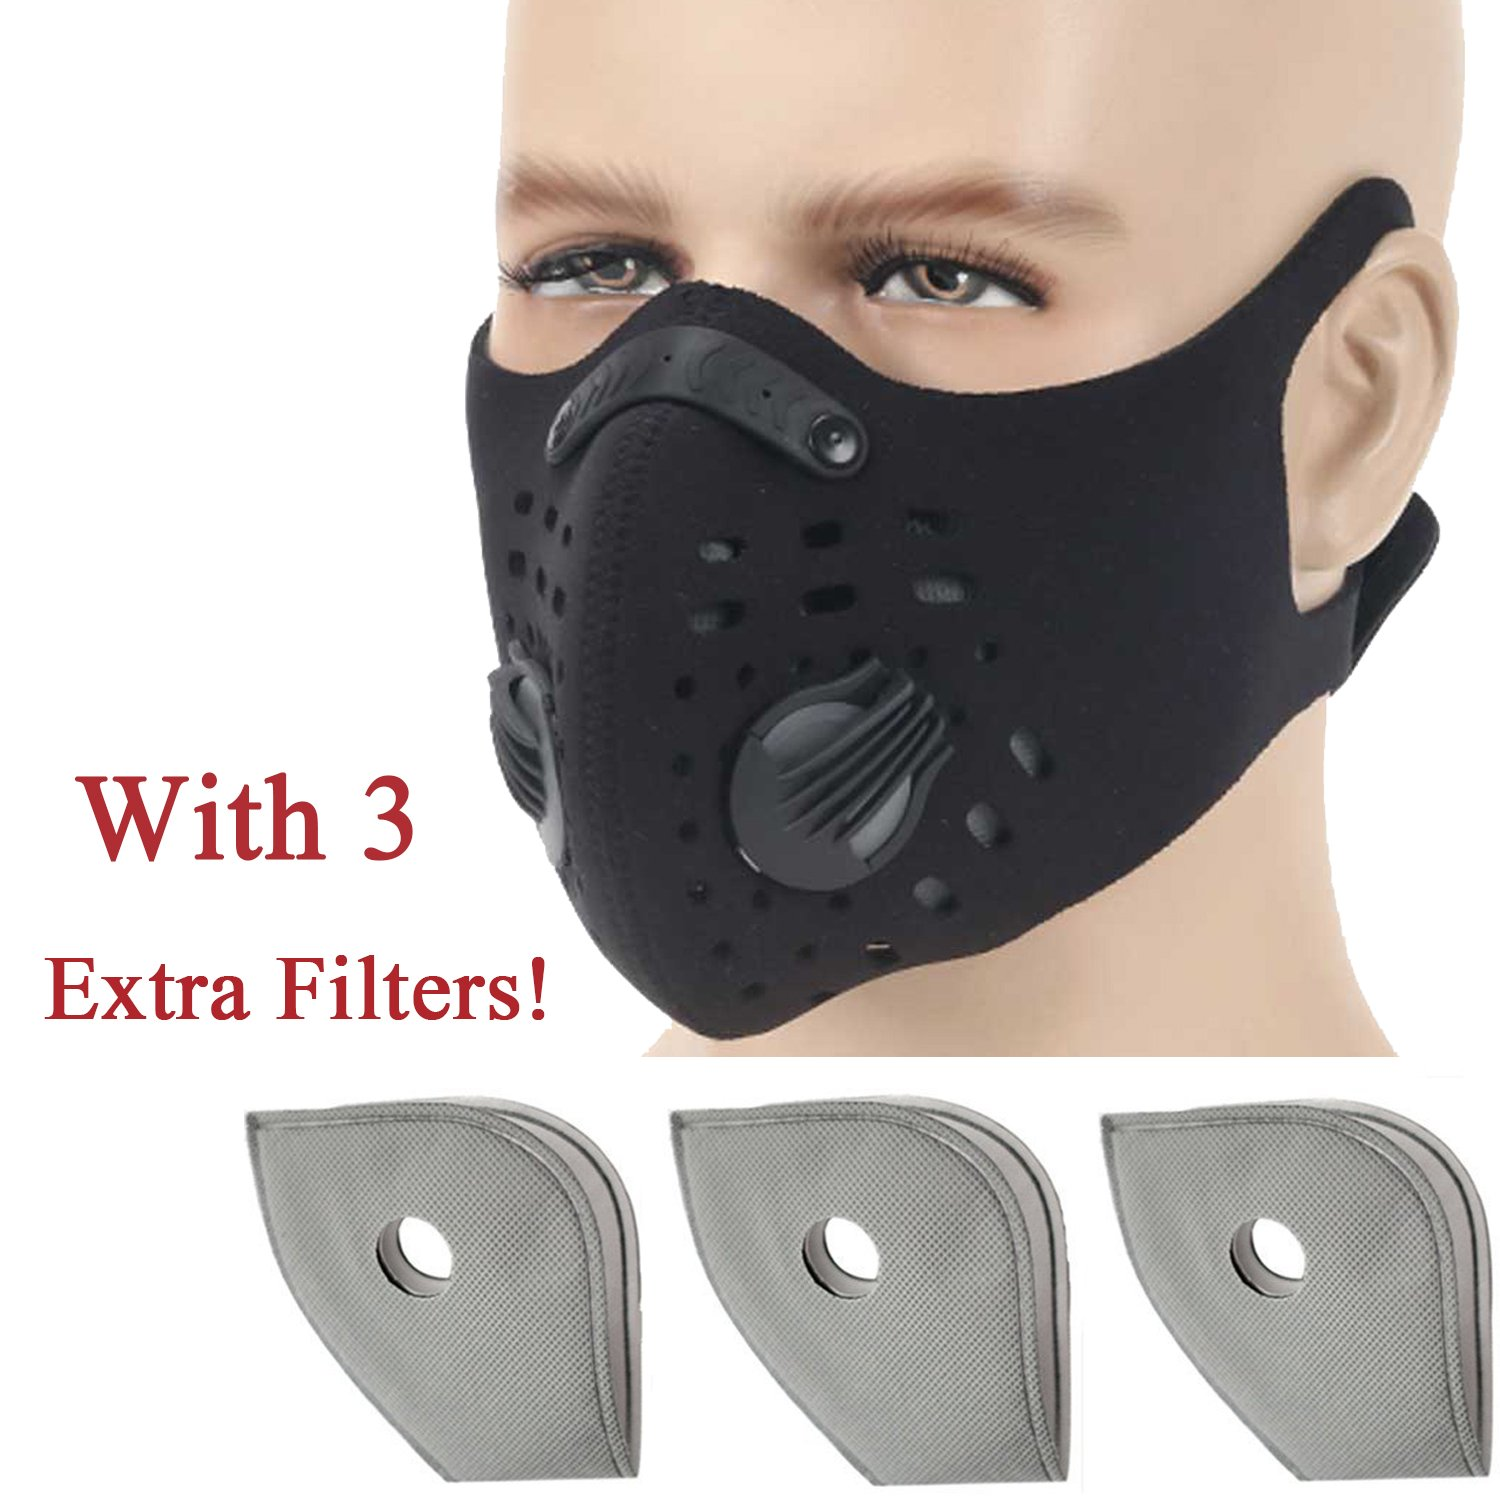 Anqier Dust mask,Activated Carbon Dustproof Mask Exhaust Gas Anti Pollen Allergy PM2.5 Dust Mask Extra Filter Cotton Sheet Cycling, Running,Outdoor Activities